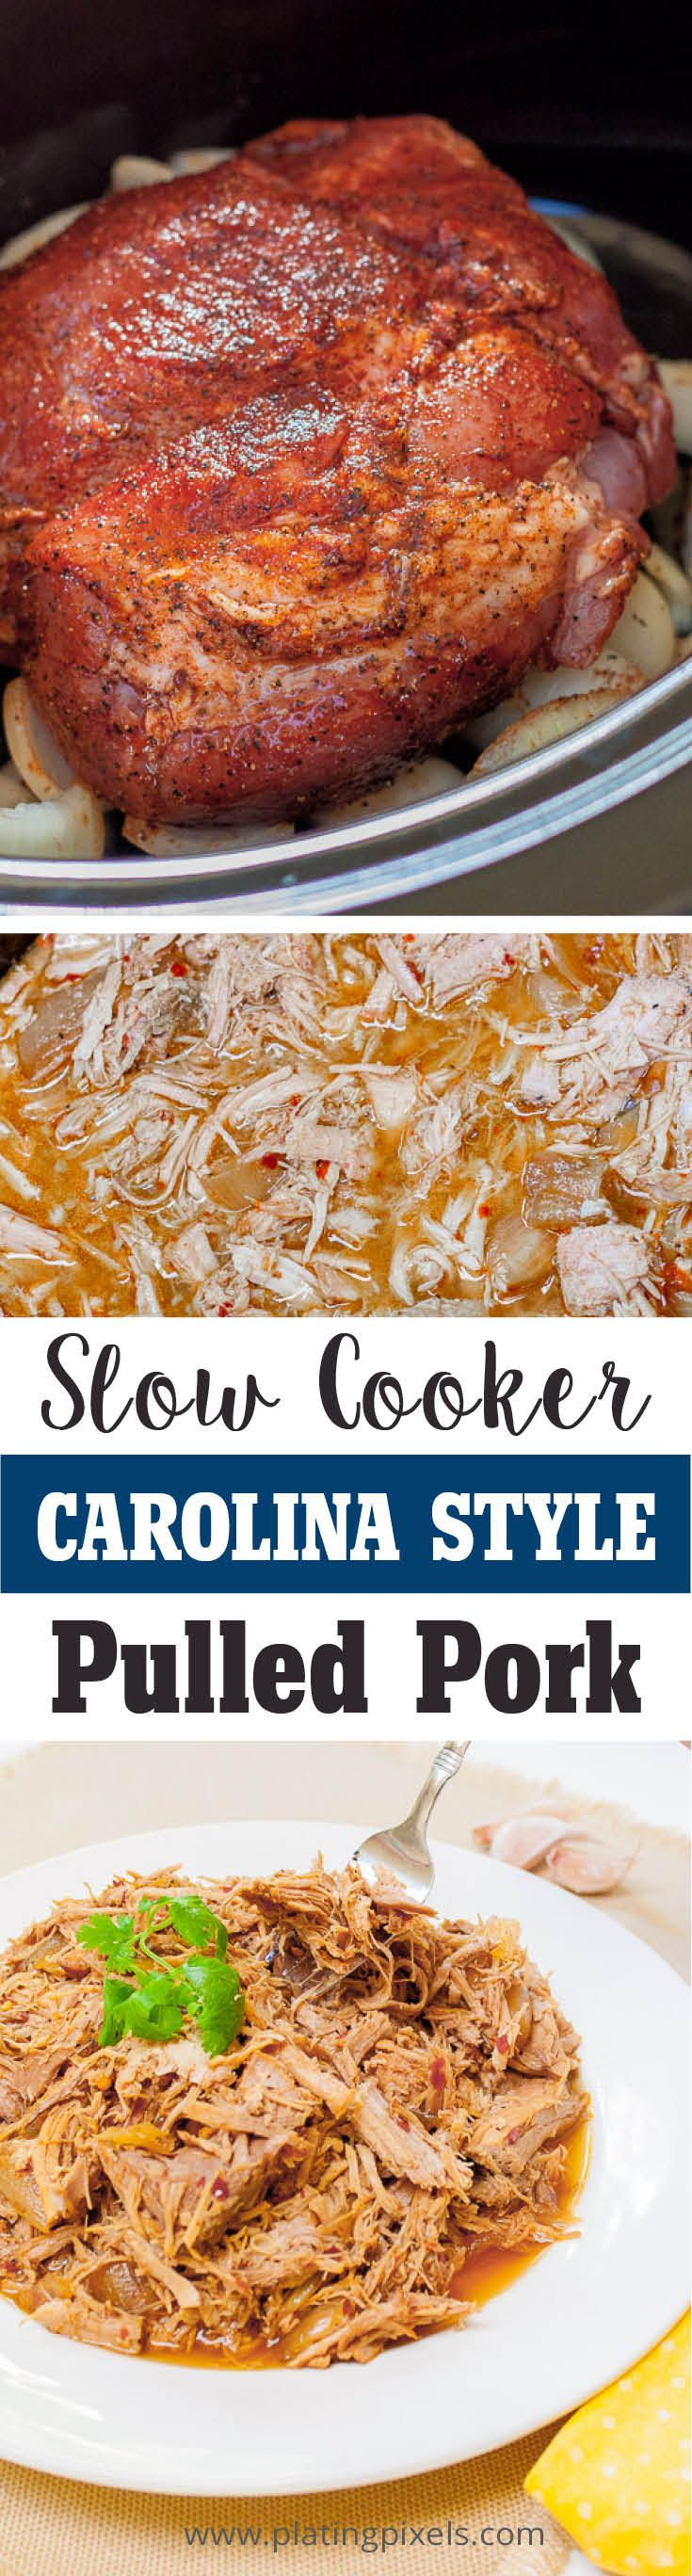 Carolina Style Slow Cooker Pulled Pork | Recipe | Style, Pulled pork ...